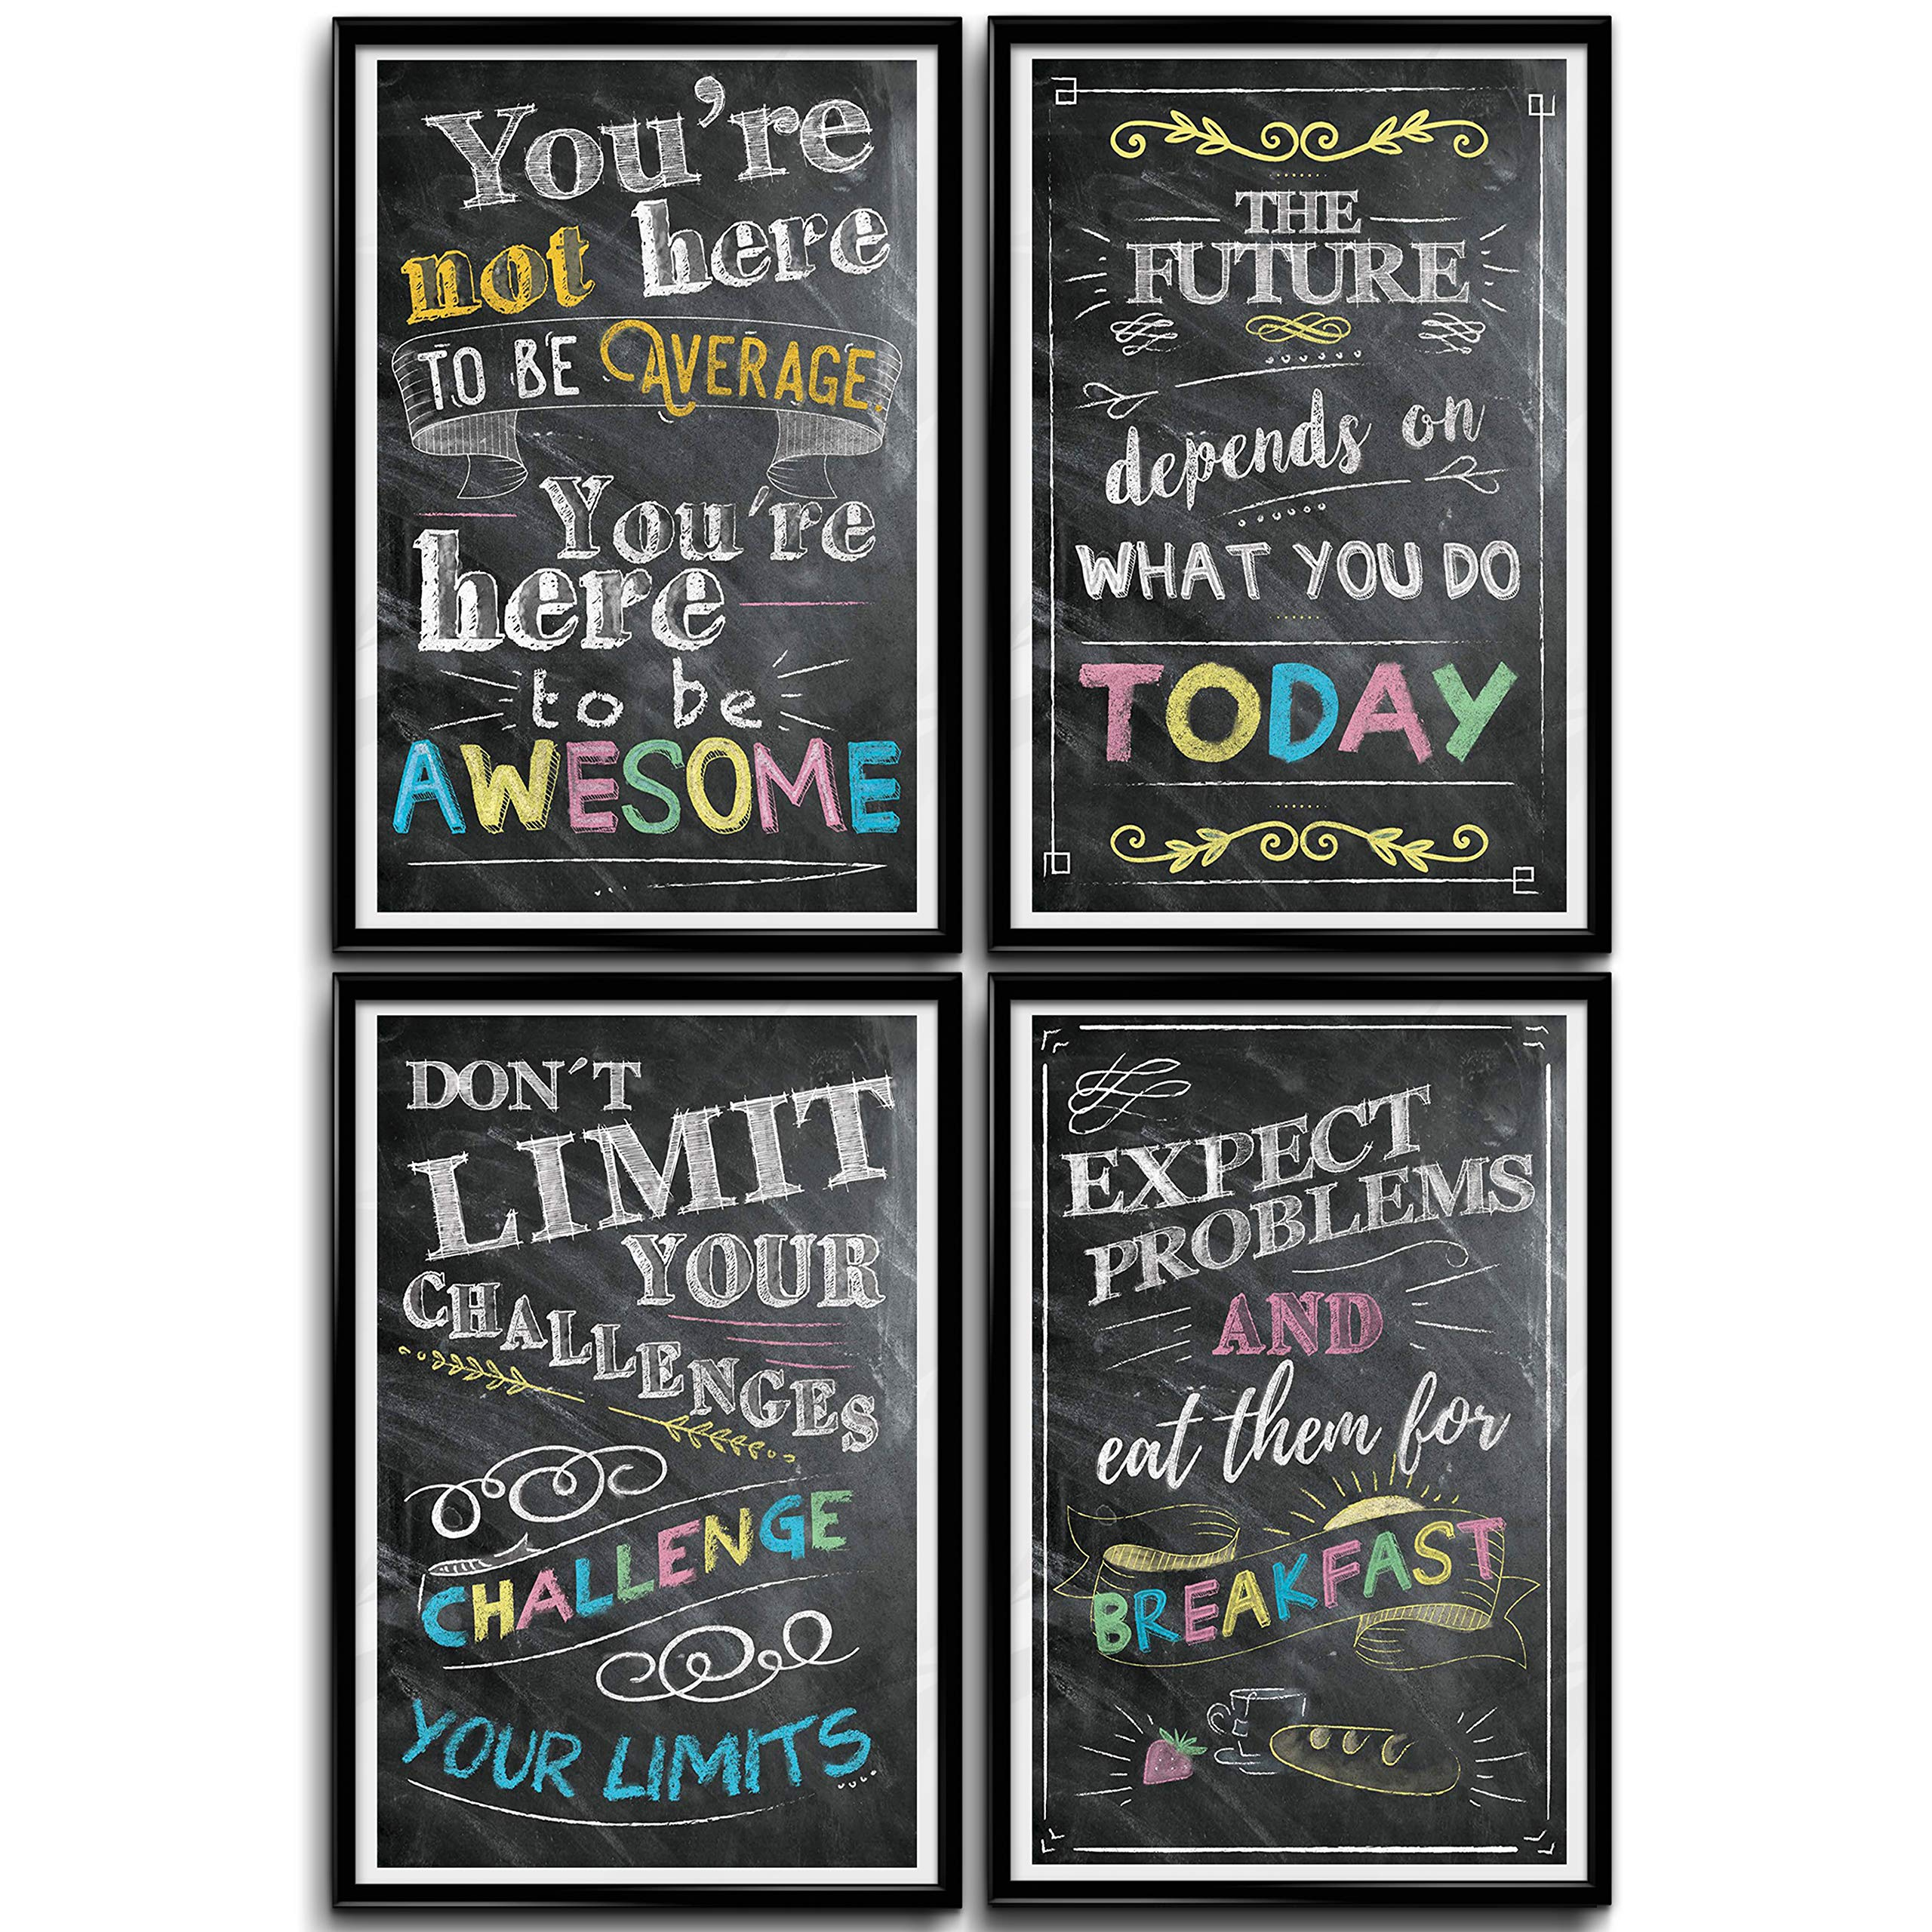 Motivational inspirational quote positive life poster picture print wall art 284